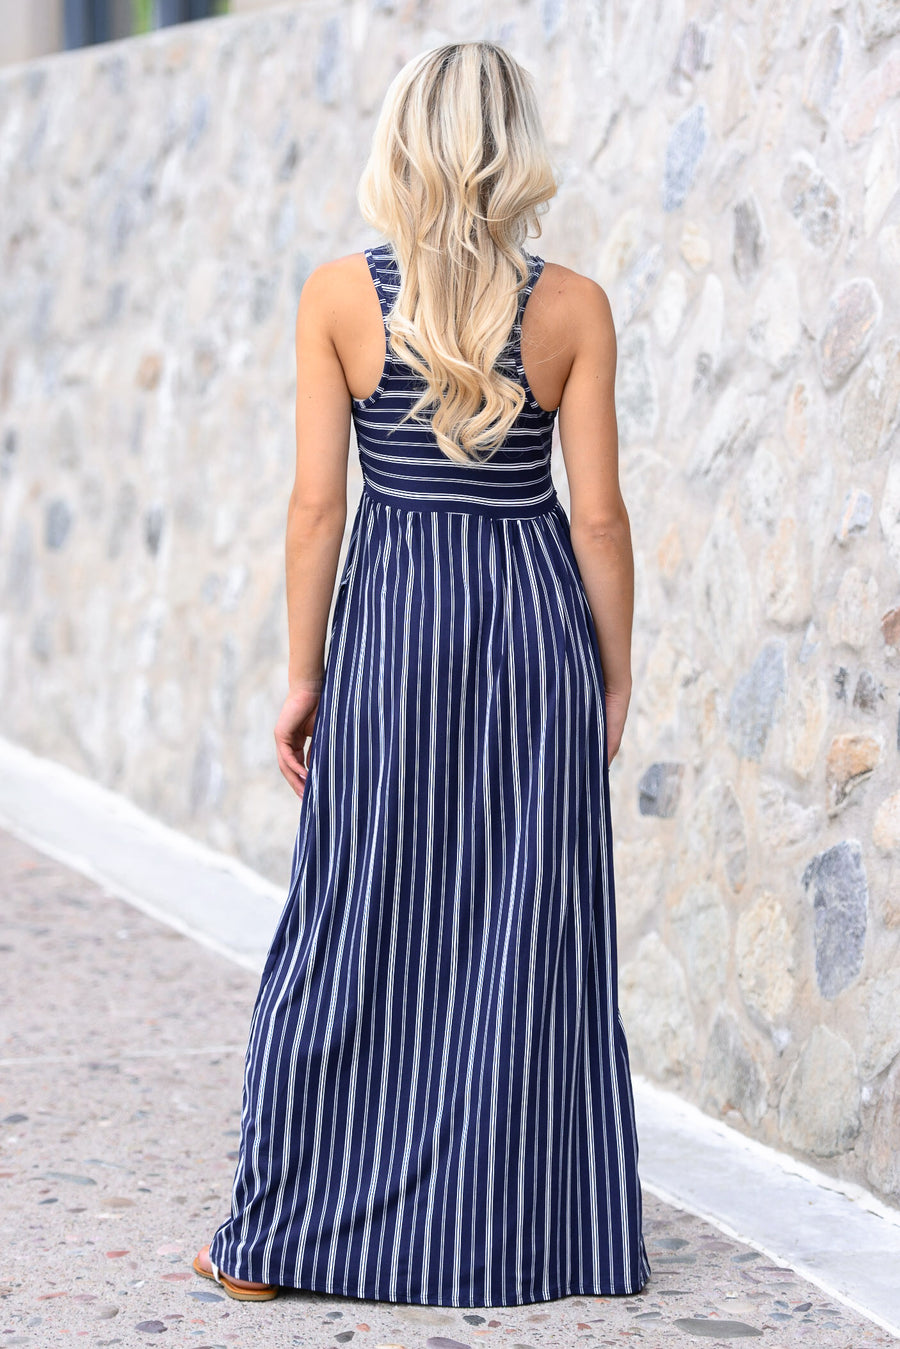 Always On My Mind Maxi Dress - Navy women's striped print tank dress, Closet Candy Boutique 1